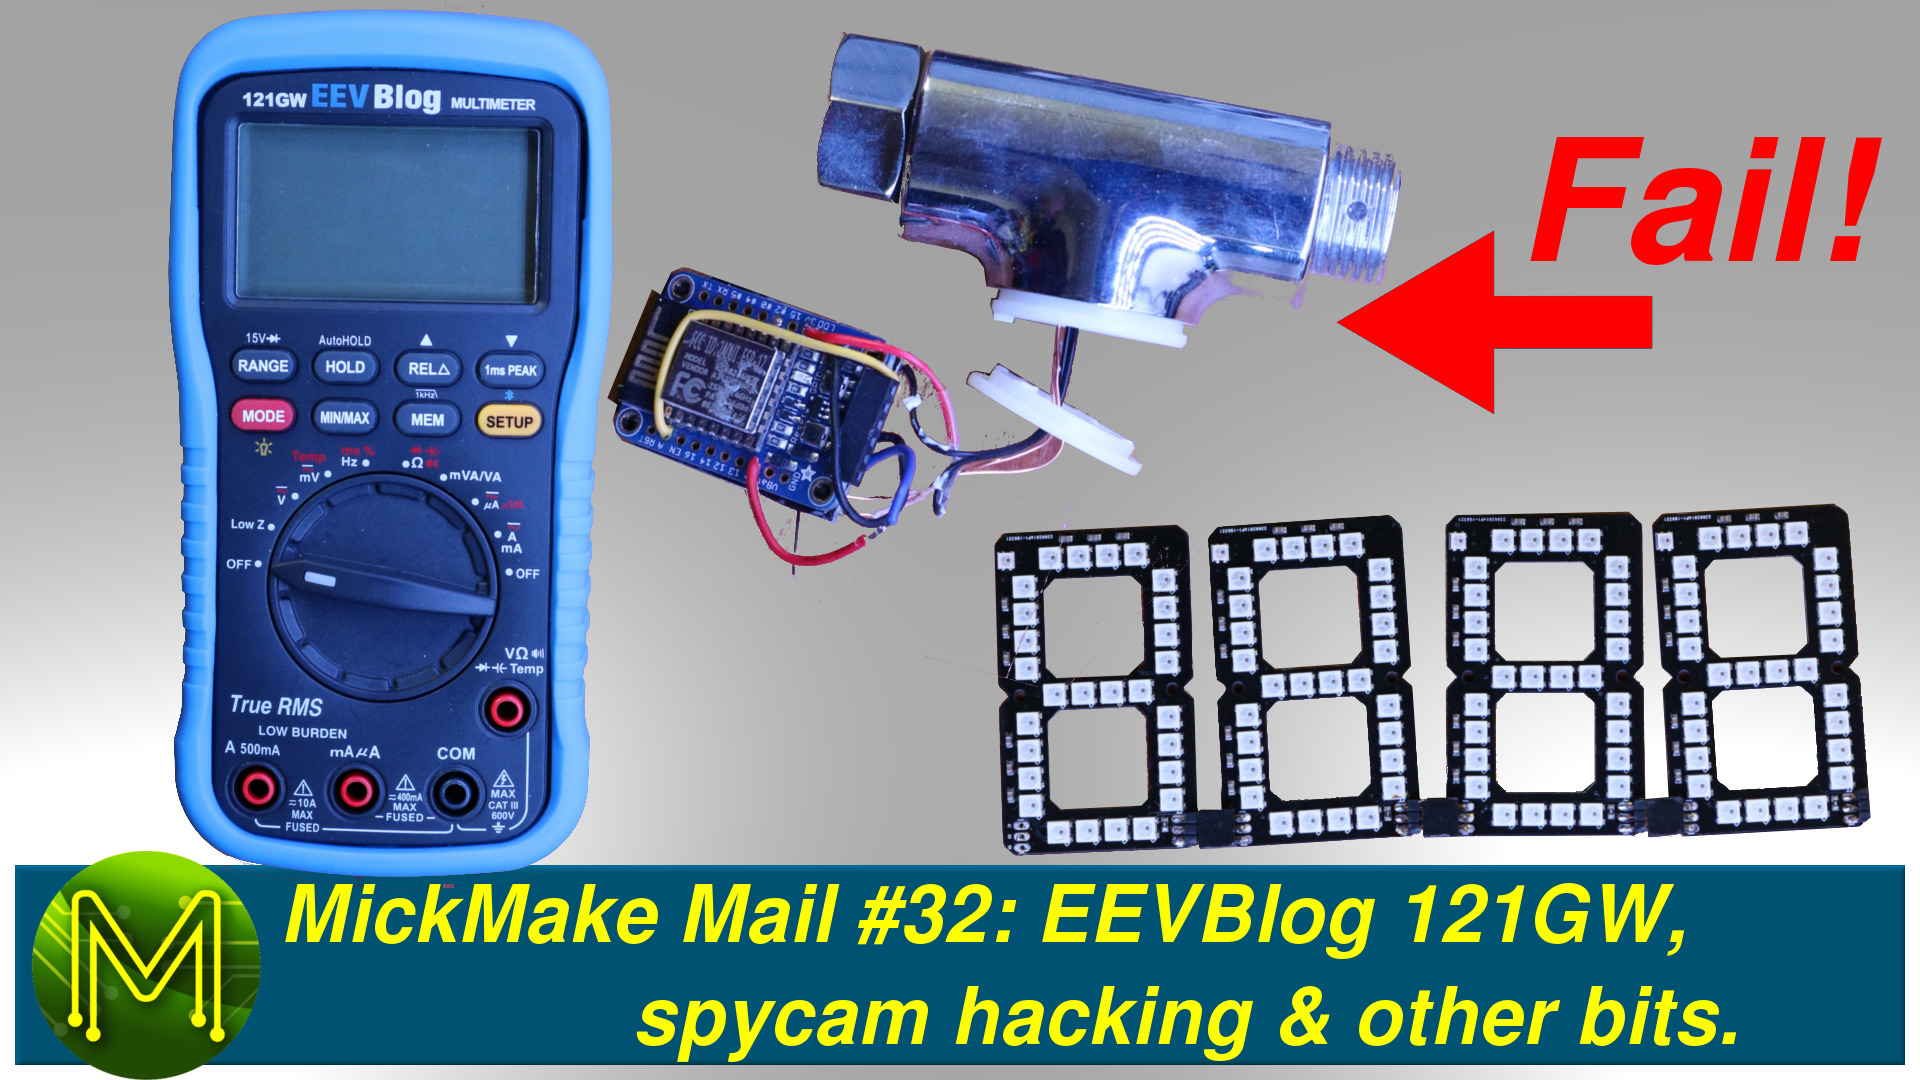 MickMake Mail #32: EEVBlog 121GW, spycam hacking and other bits